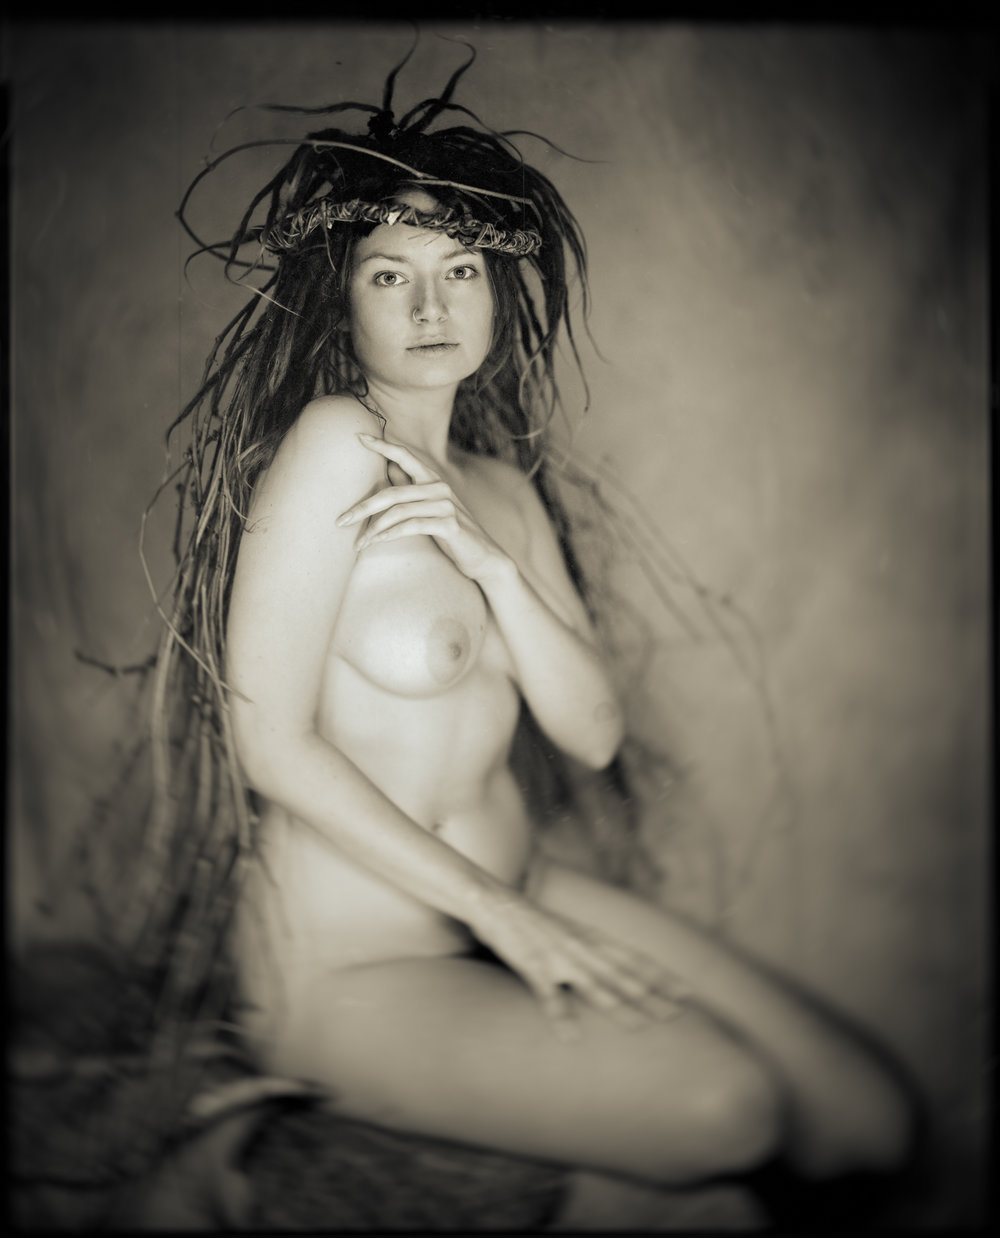 "The ethereal Bianca from the ADORNED series, shot on 8x10"" film. Headpiece and styling by Gian Designs."